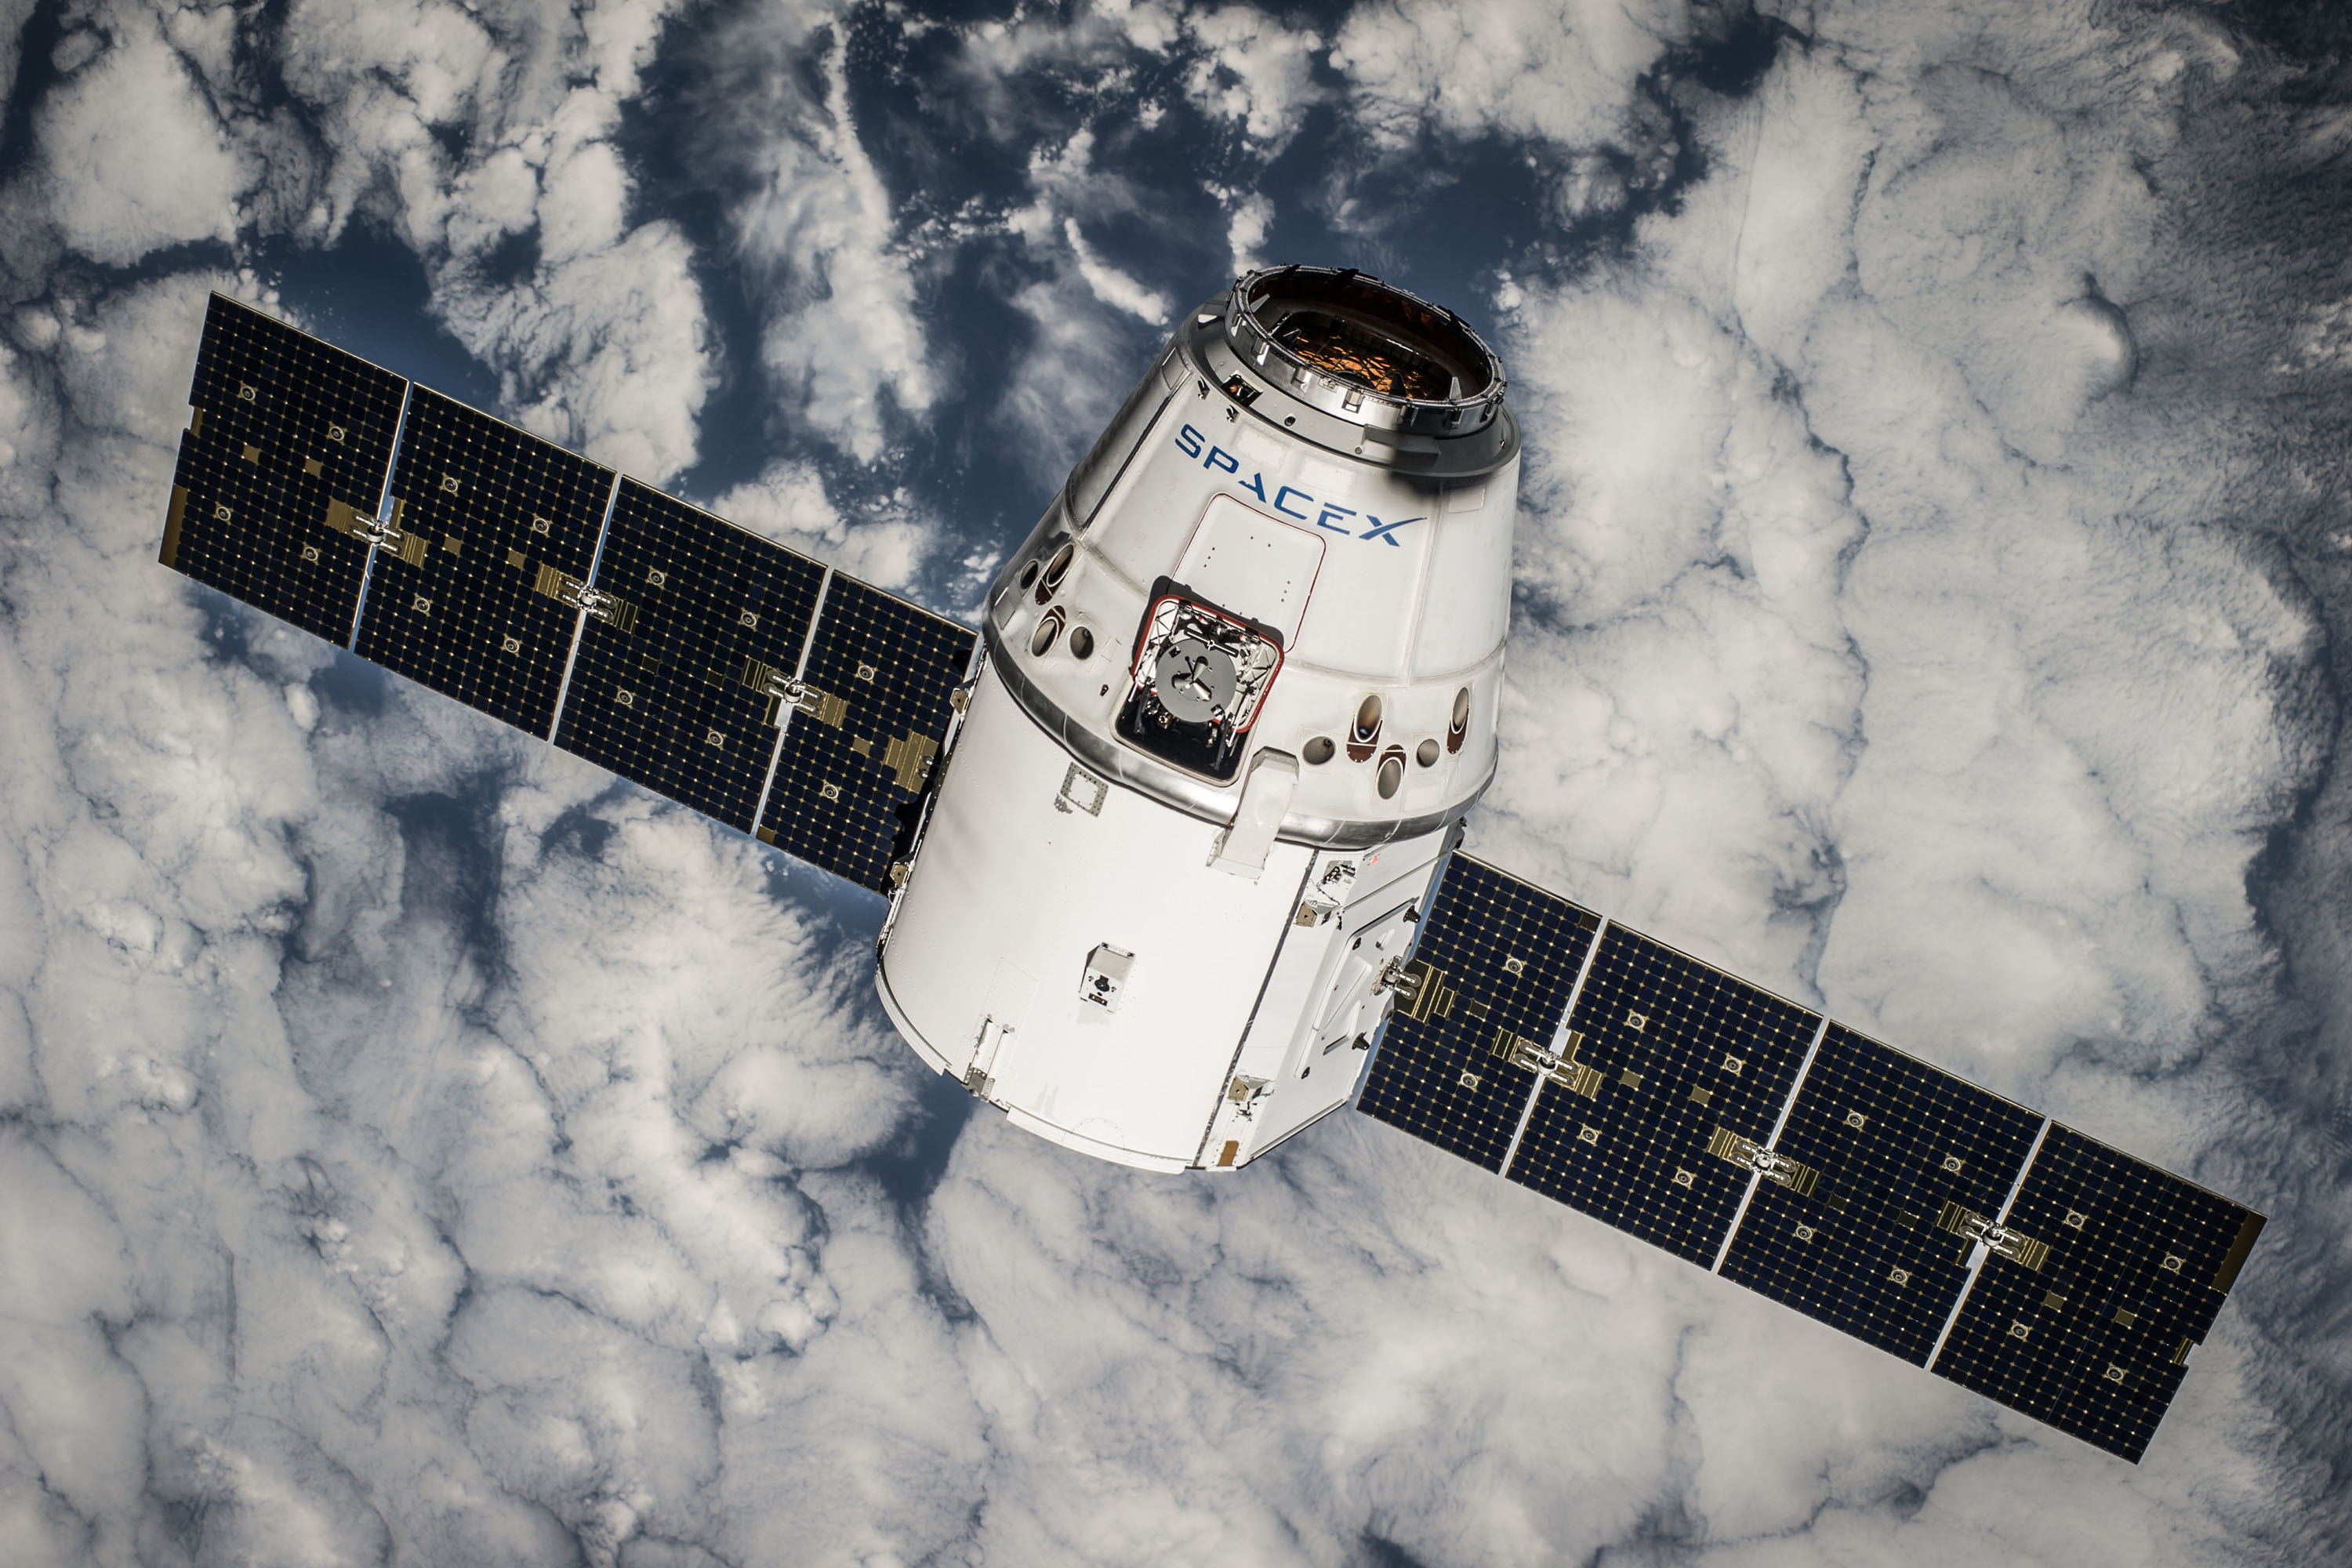 A SpaceX rocket in orbit. On Saturday, the company will launch a rocket that it will attempt to land on the way down. Photo: Courtesy of SpaceX